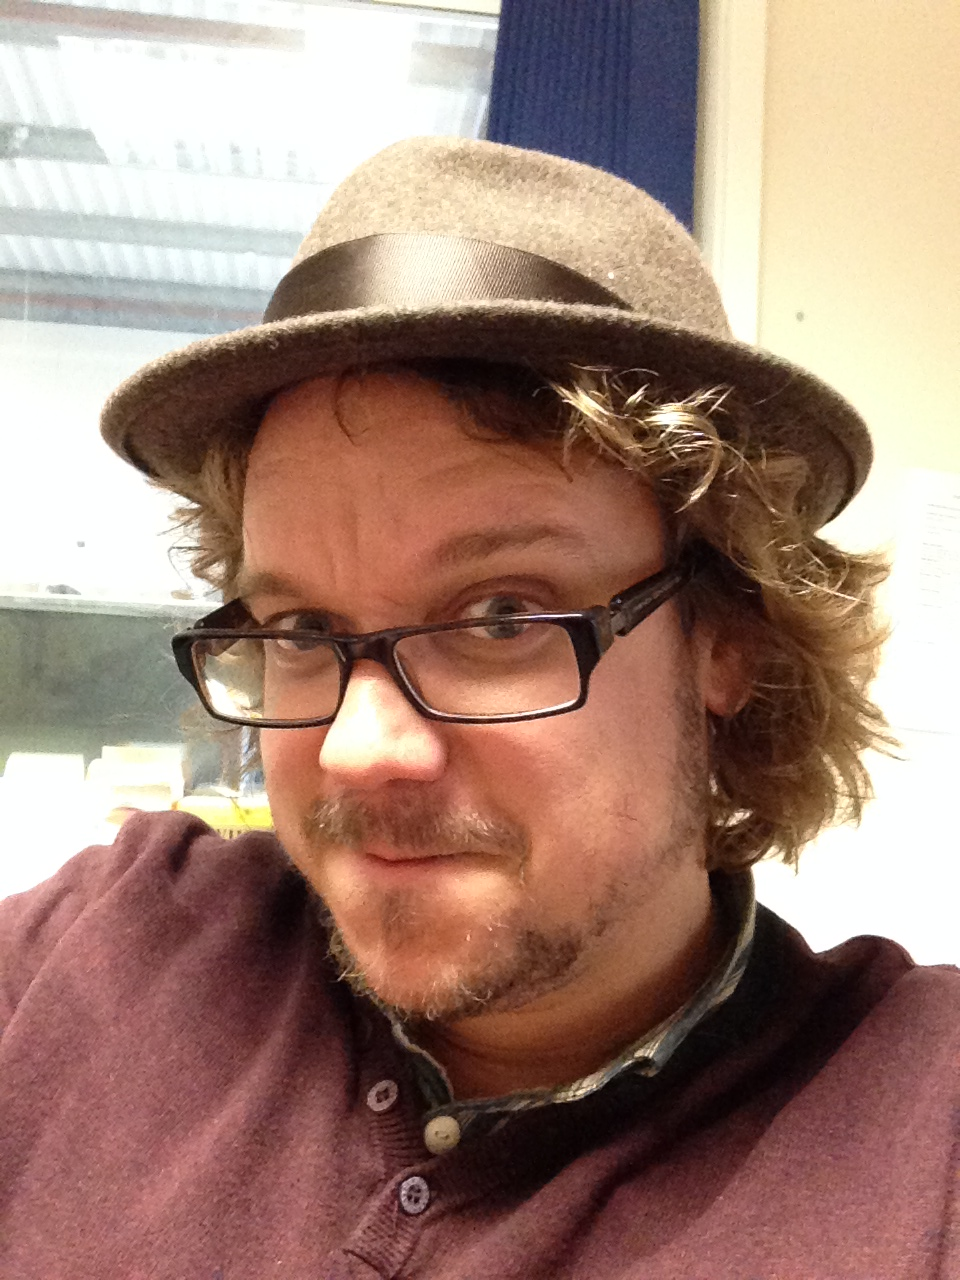 I experiment with hats.